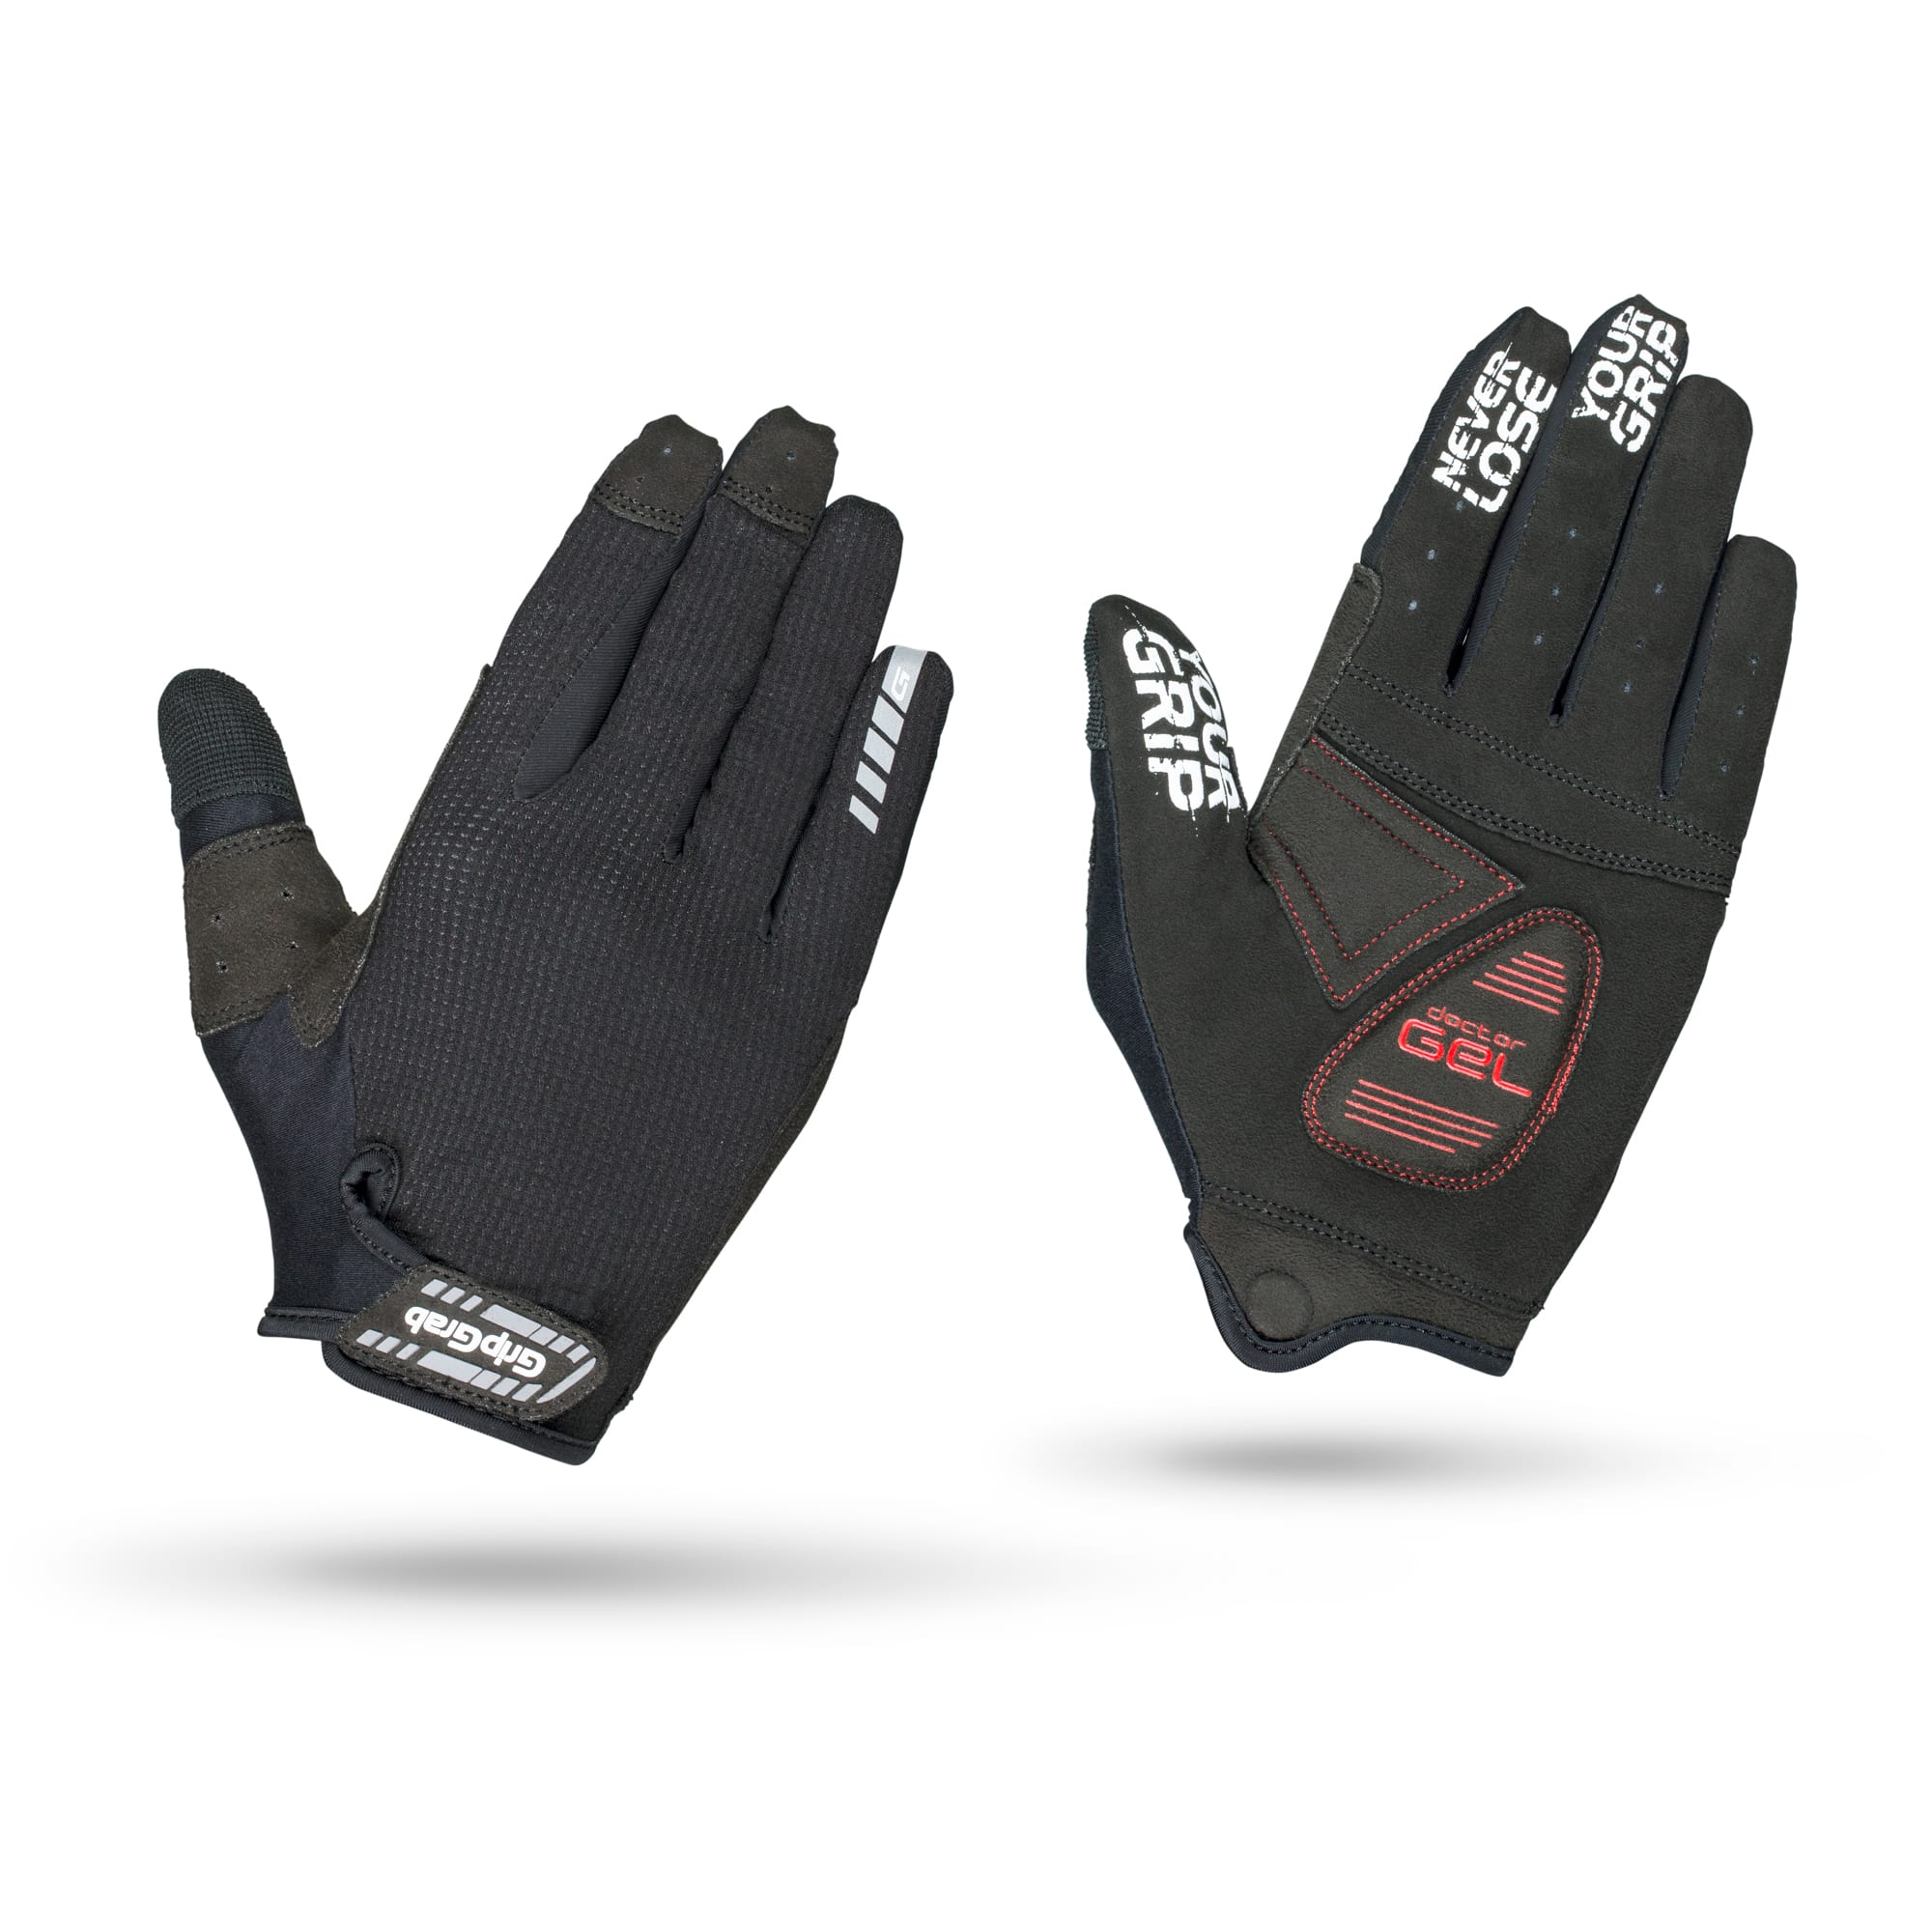 SuperGel XC Touchscreen Full Finger Glove, GripGrab